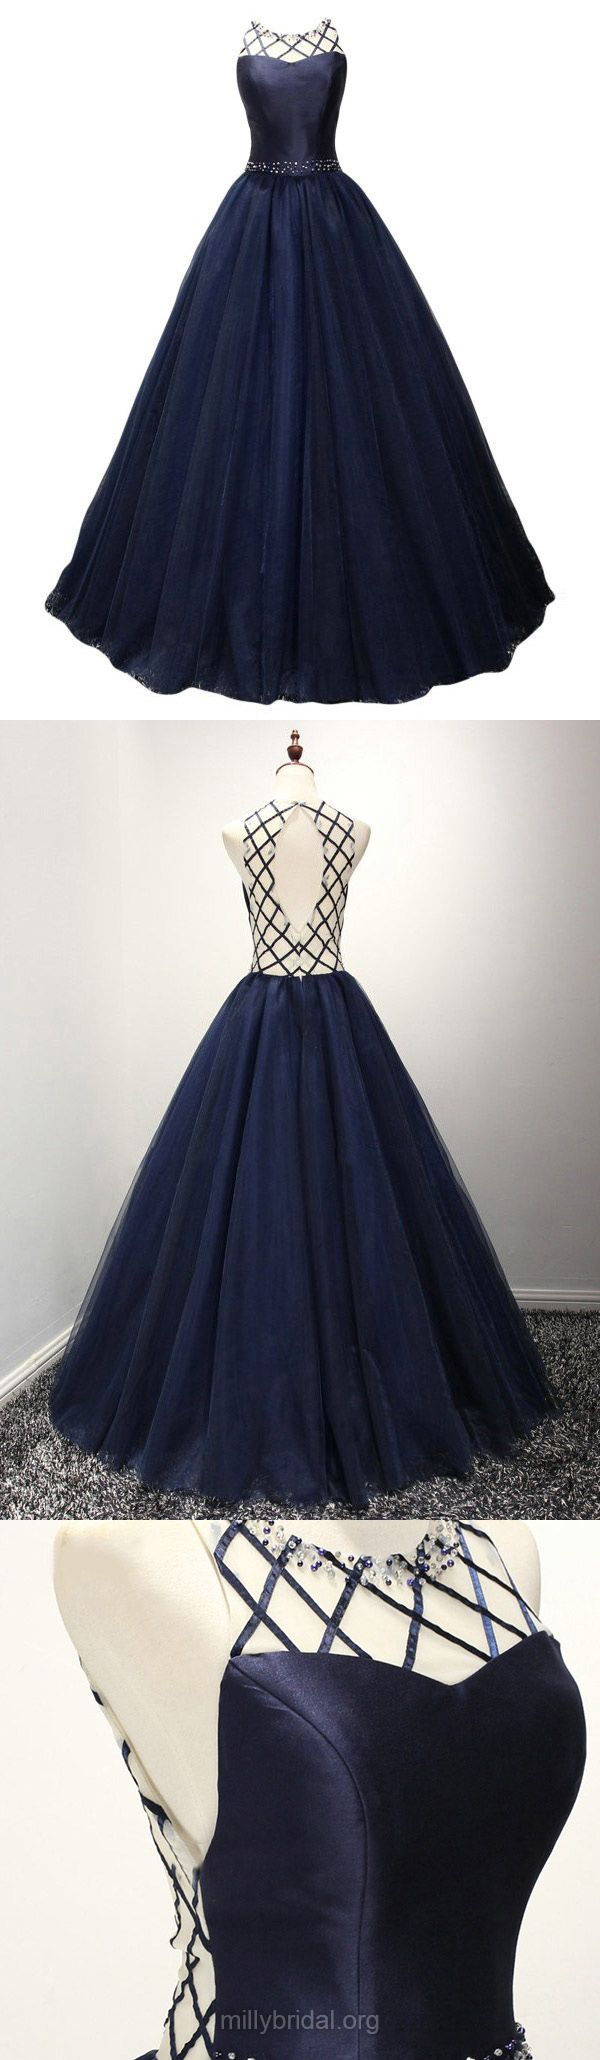 Dark navy prom dresses ball gown long party dresses scoop neck